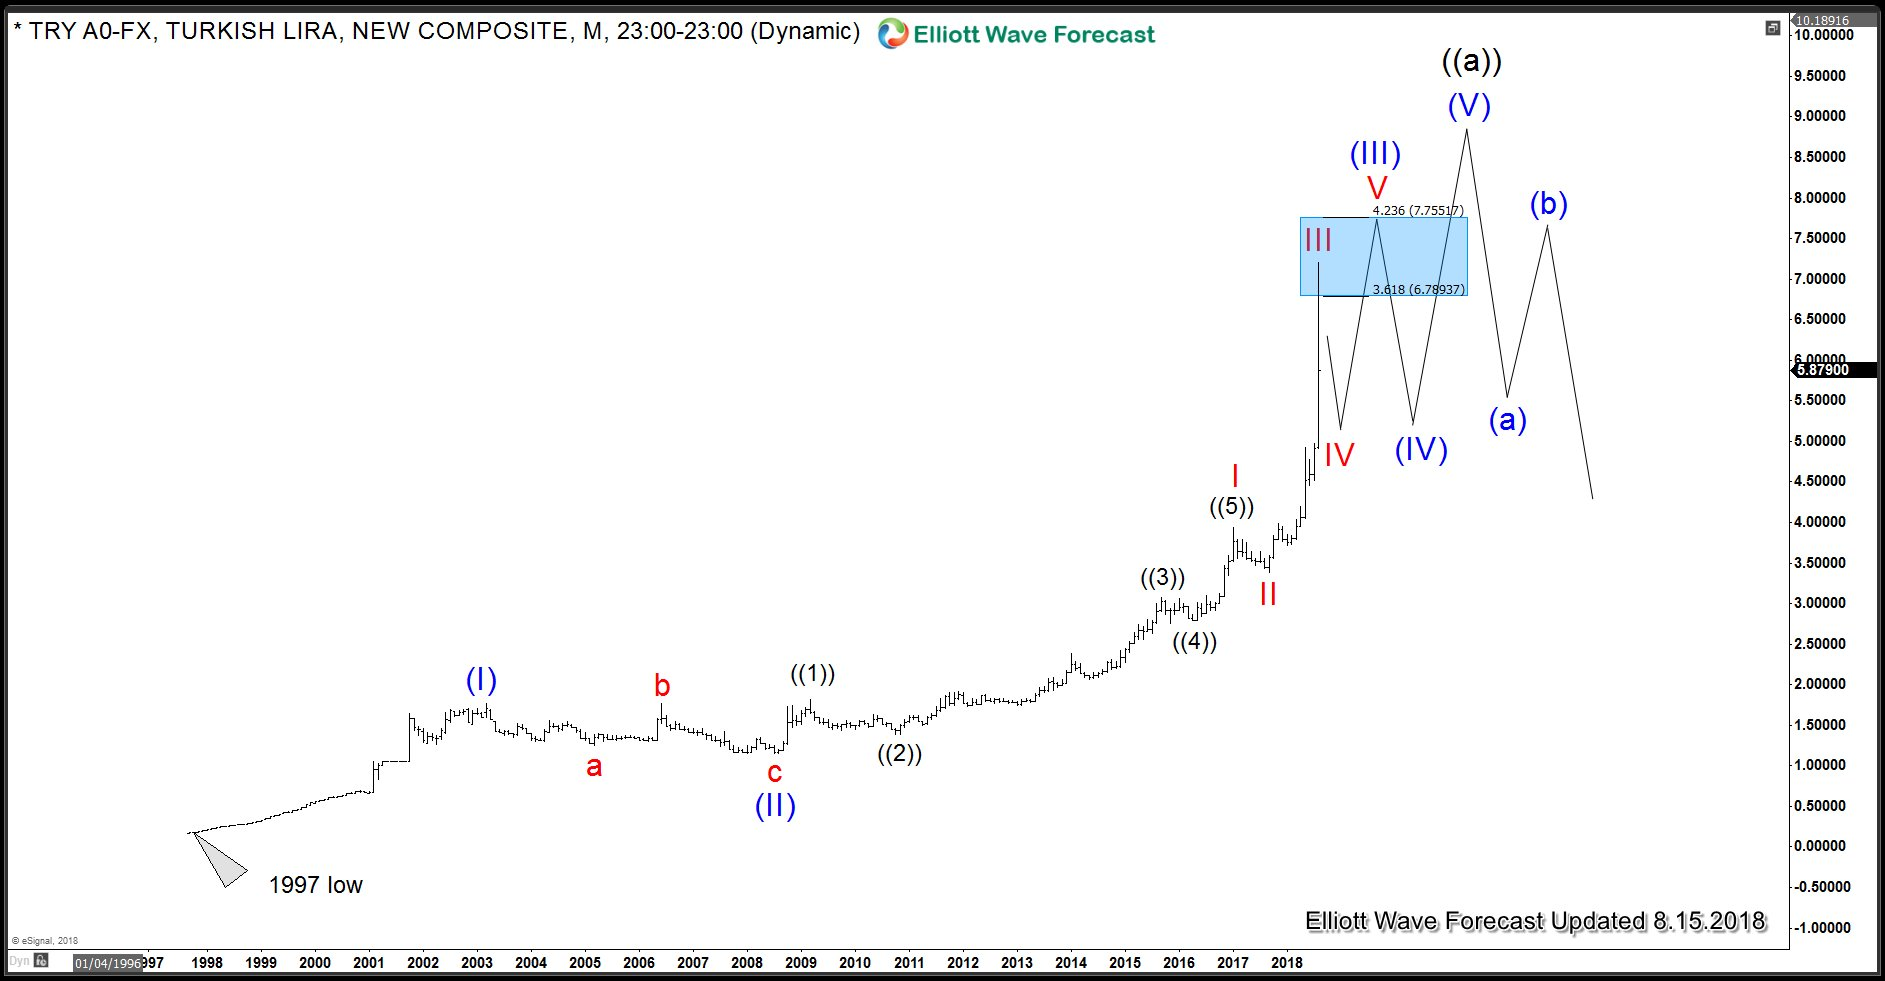 USDTRY (Turkish Lira) Monthly Elliott Wave Analysis